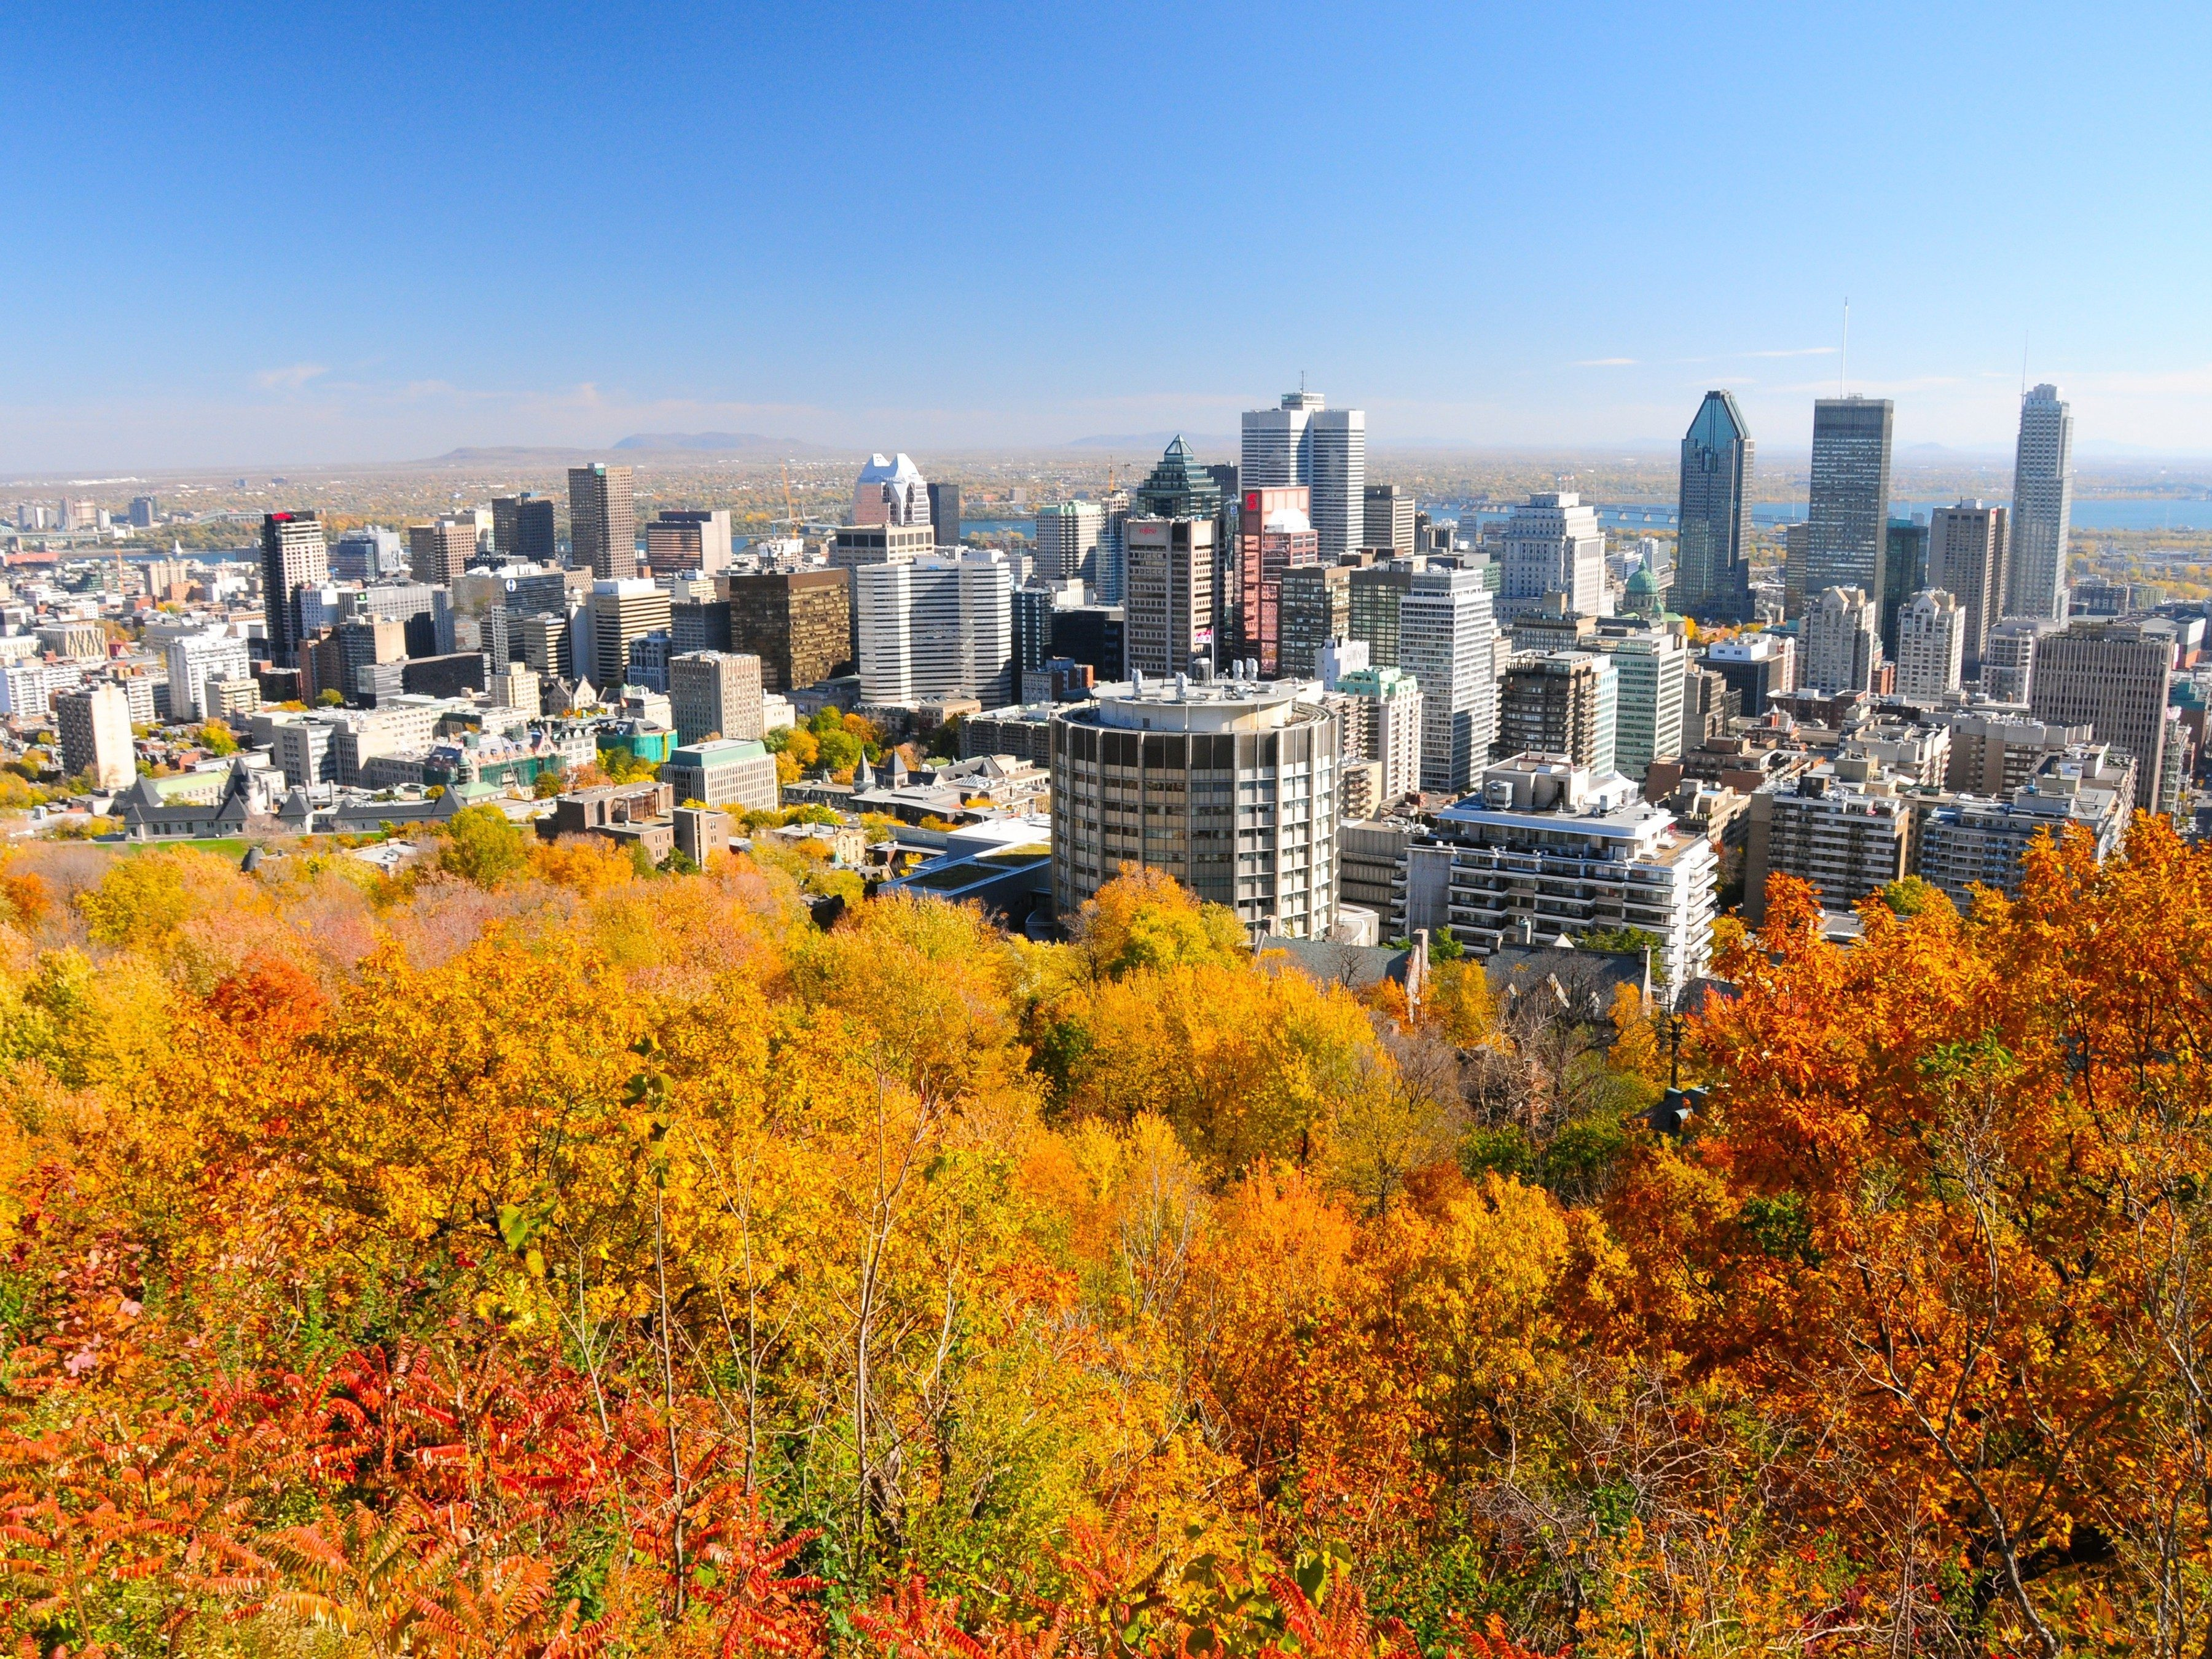 MustSee Attractions In Montreal And Quebec City - 10 things to see and do in quebec city